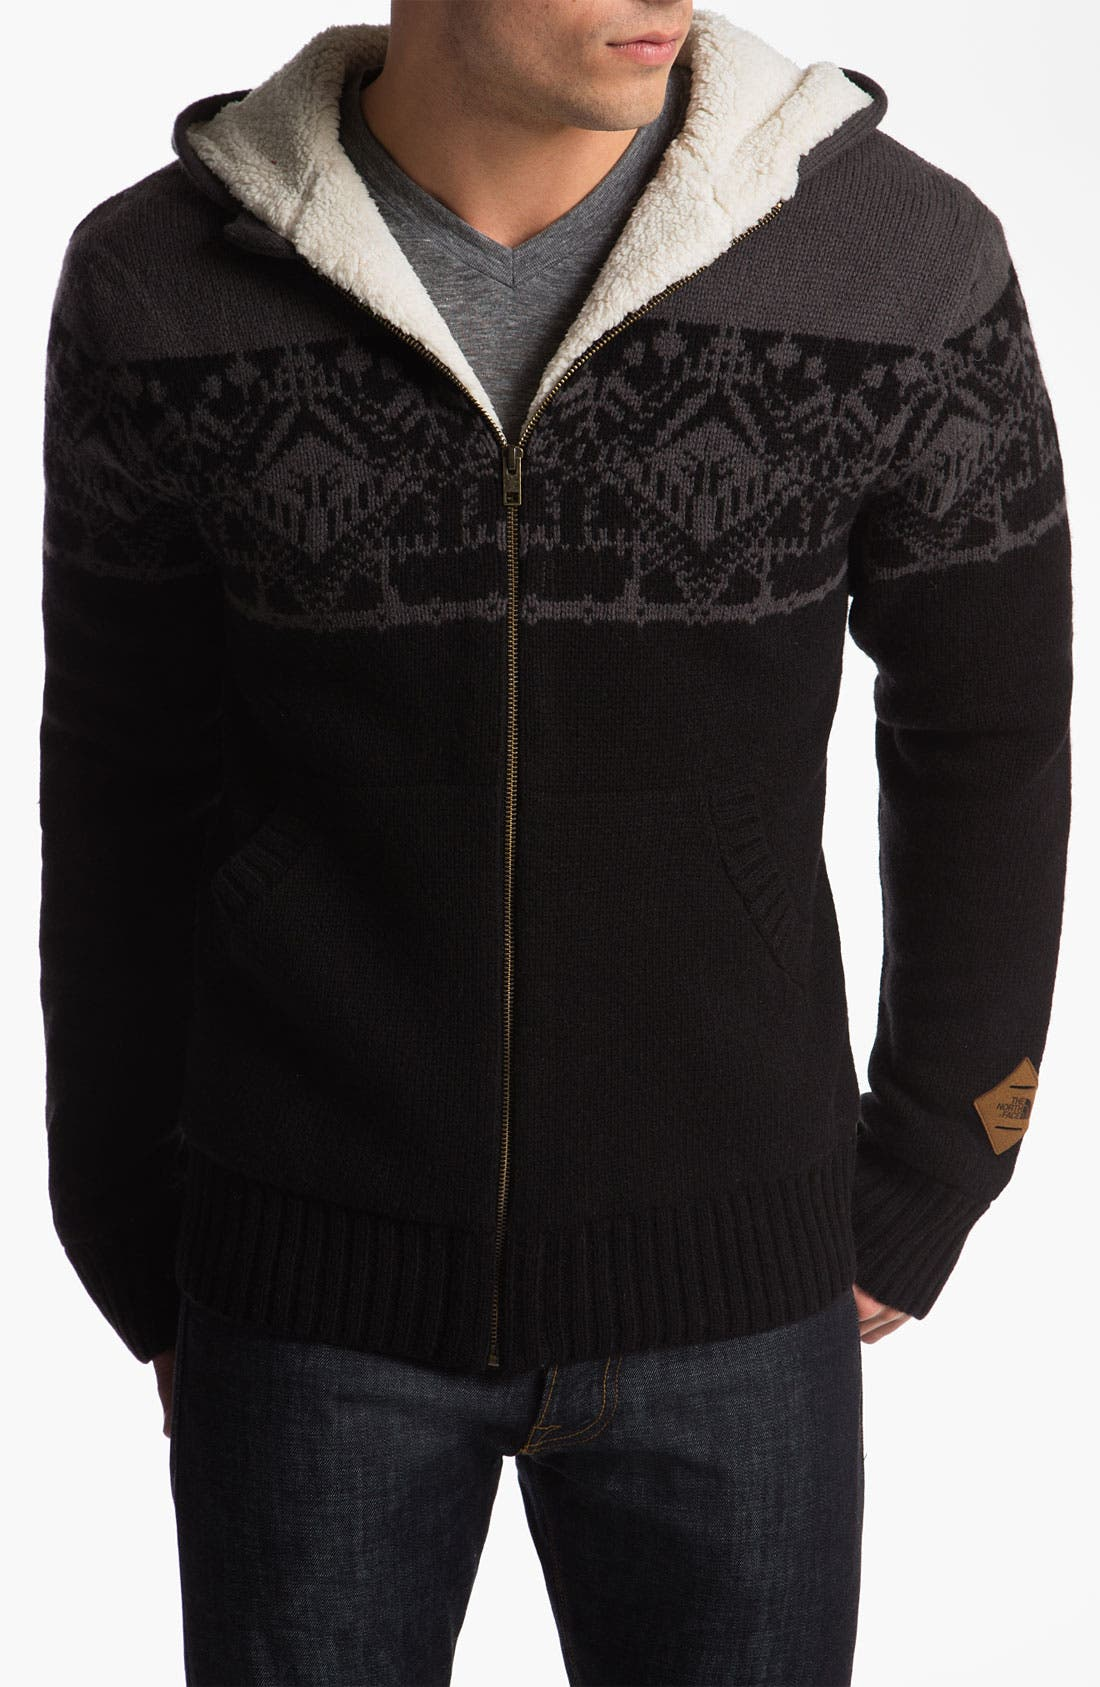 Alternate Image 1 Selected - The North Face 'Selawik' Hooded Zip Sweater